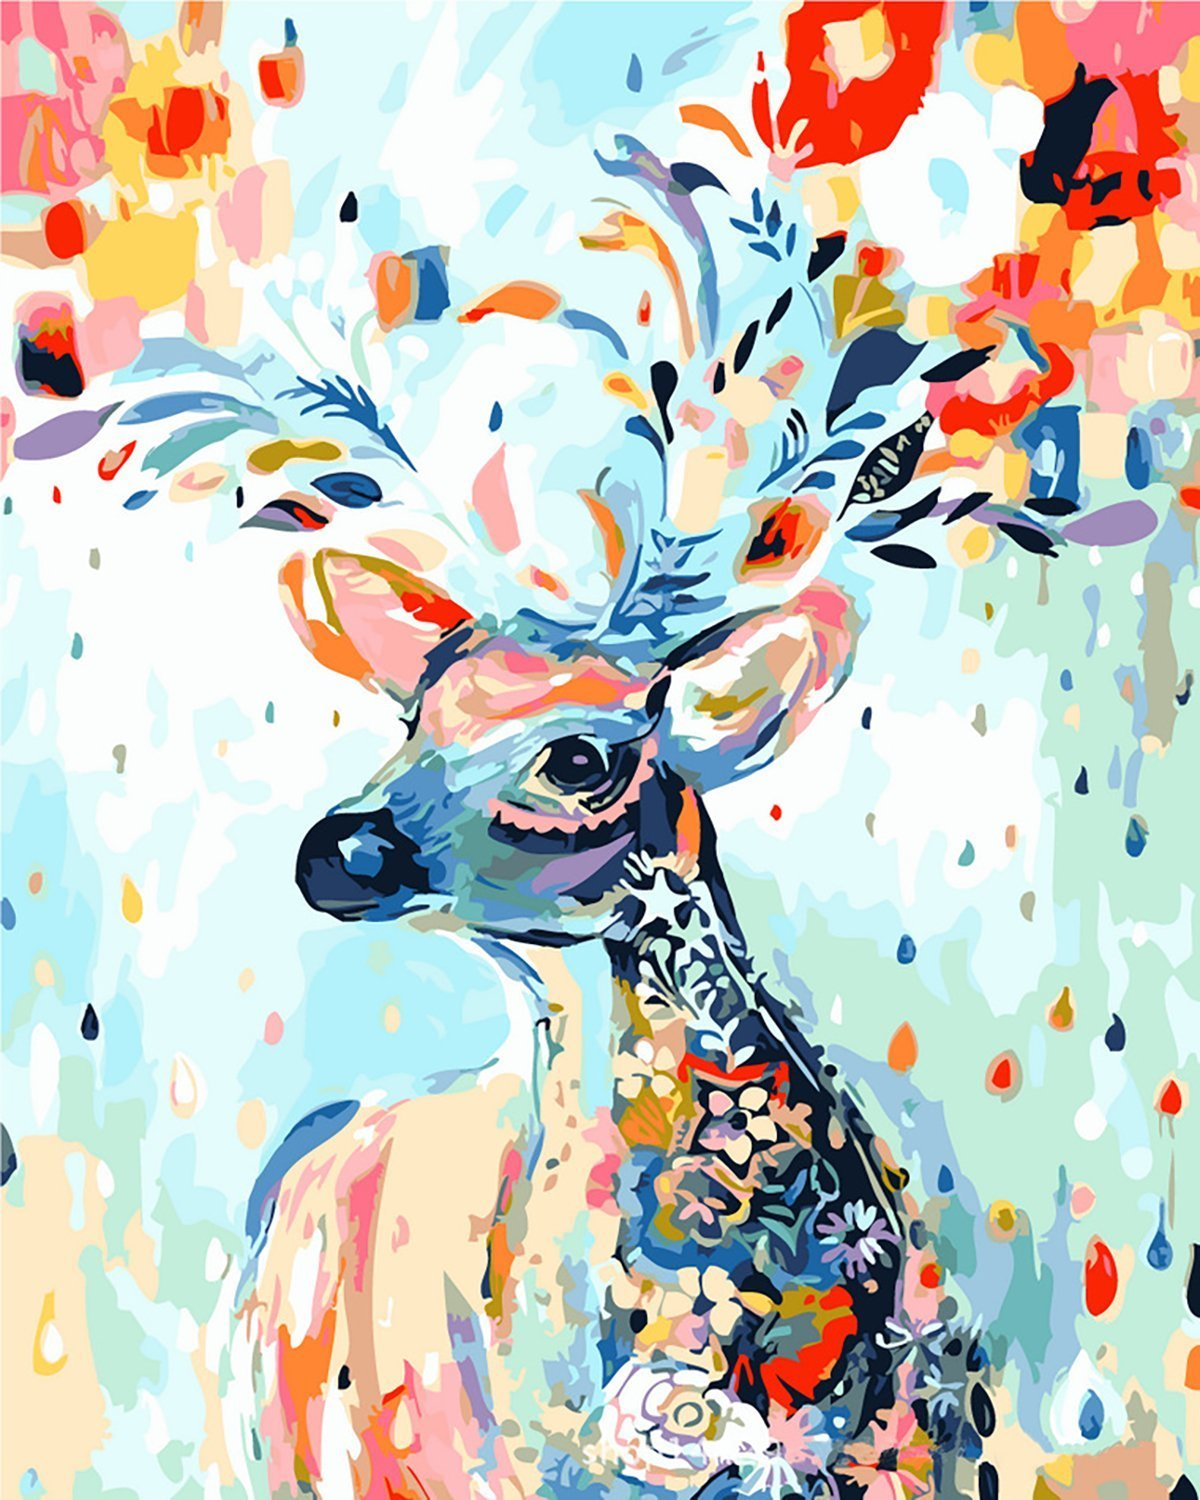 [Wooden Framed] Diy Oil Painting, Paint By Number Home Decor Wall Pic Value Gift-Painted Deer 12x16 inch digital oil painting